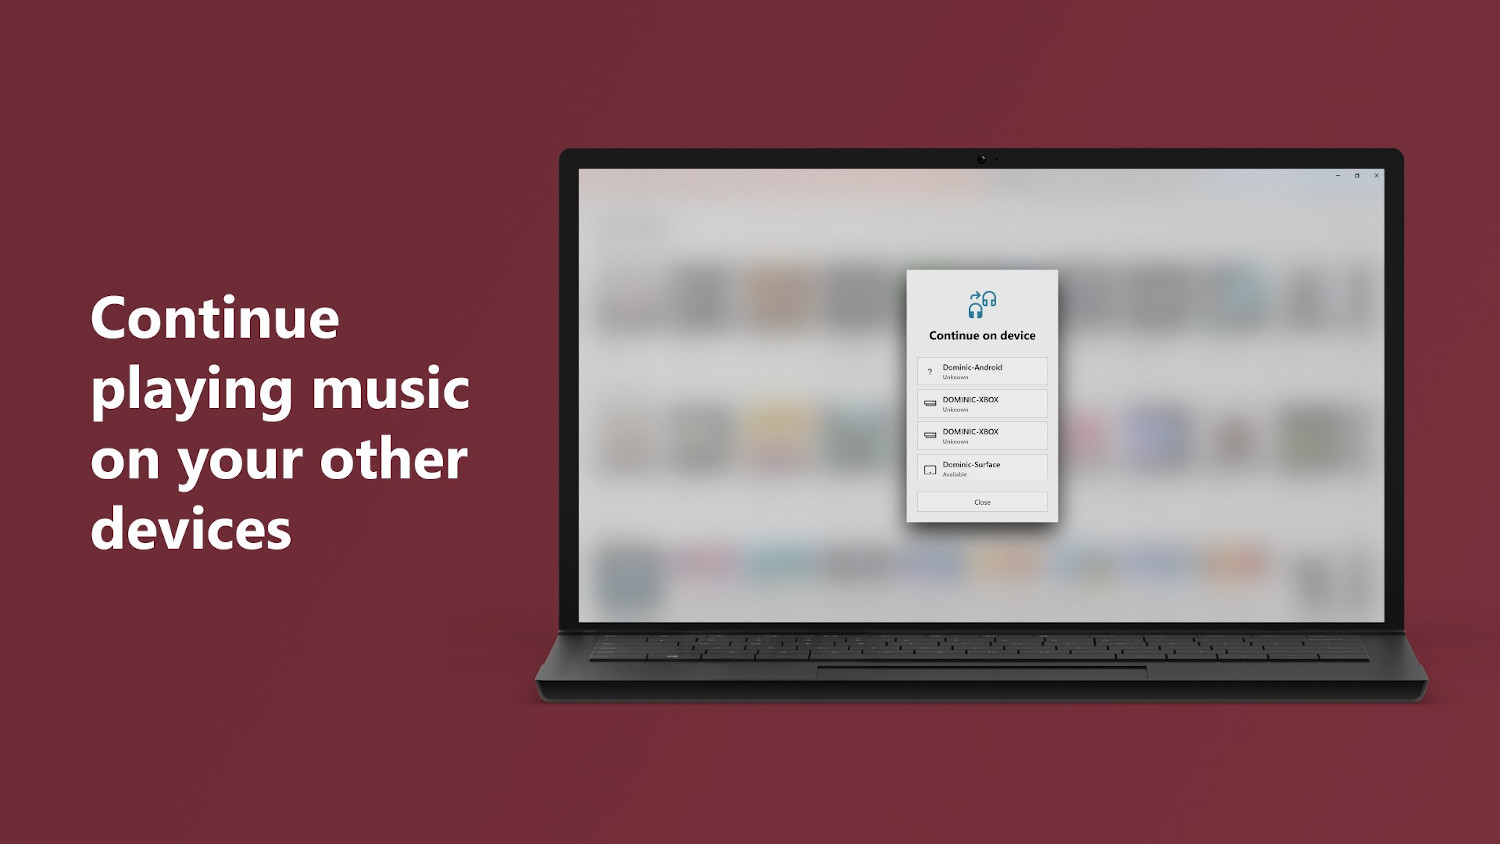 Continue playing music on your other devices